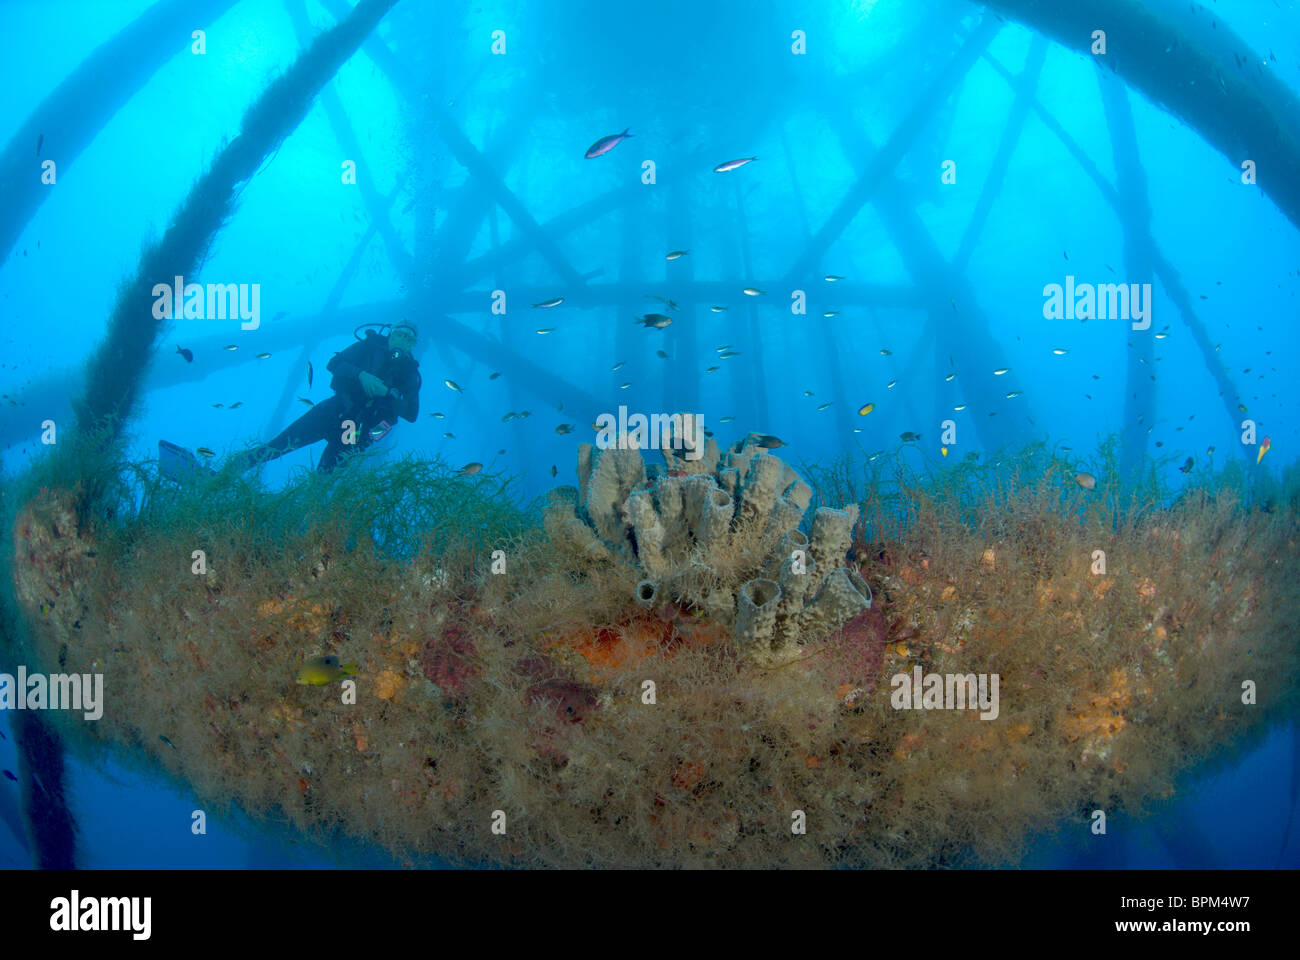 Delicieux Marine Life On HI 389 Rig With Diver, Near East Flower Garden Bank, Gulf Of  Mexico